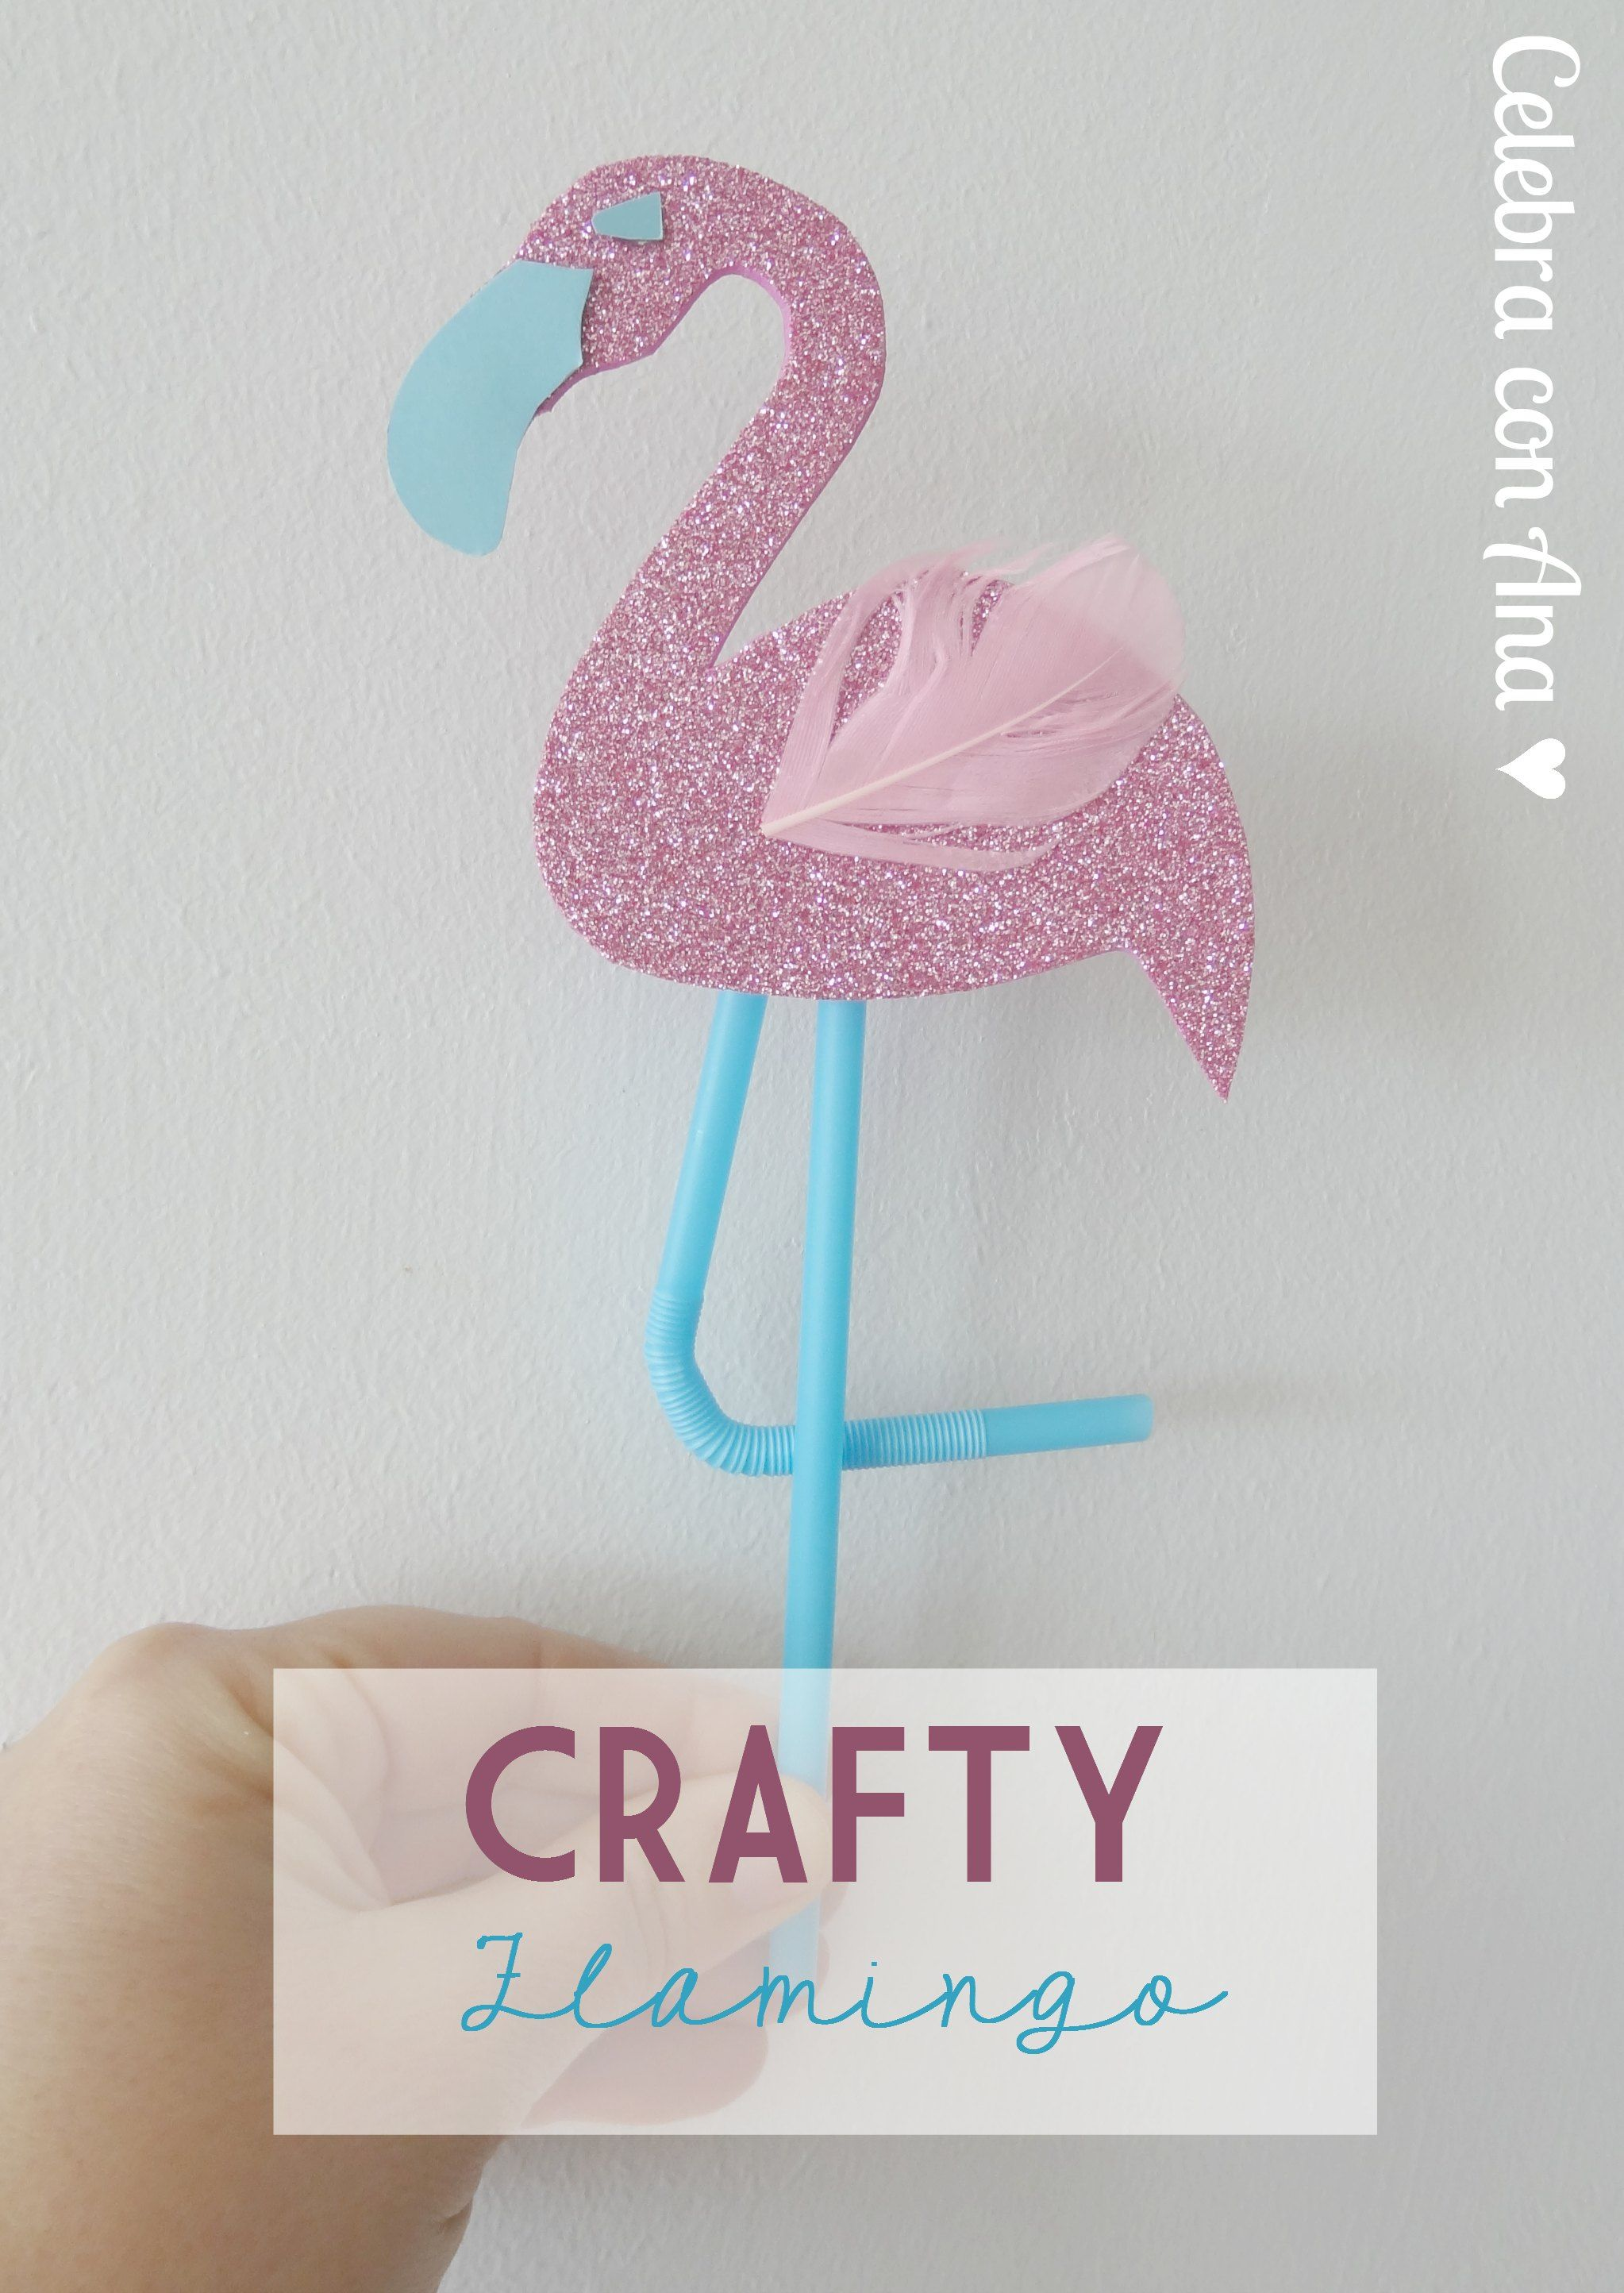 Flamingo topper crafty flamingo manualidades crafts - Manualidades con carton pluma ...